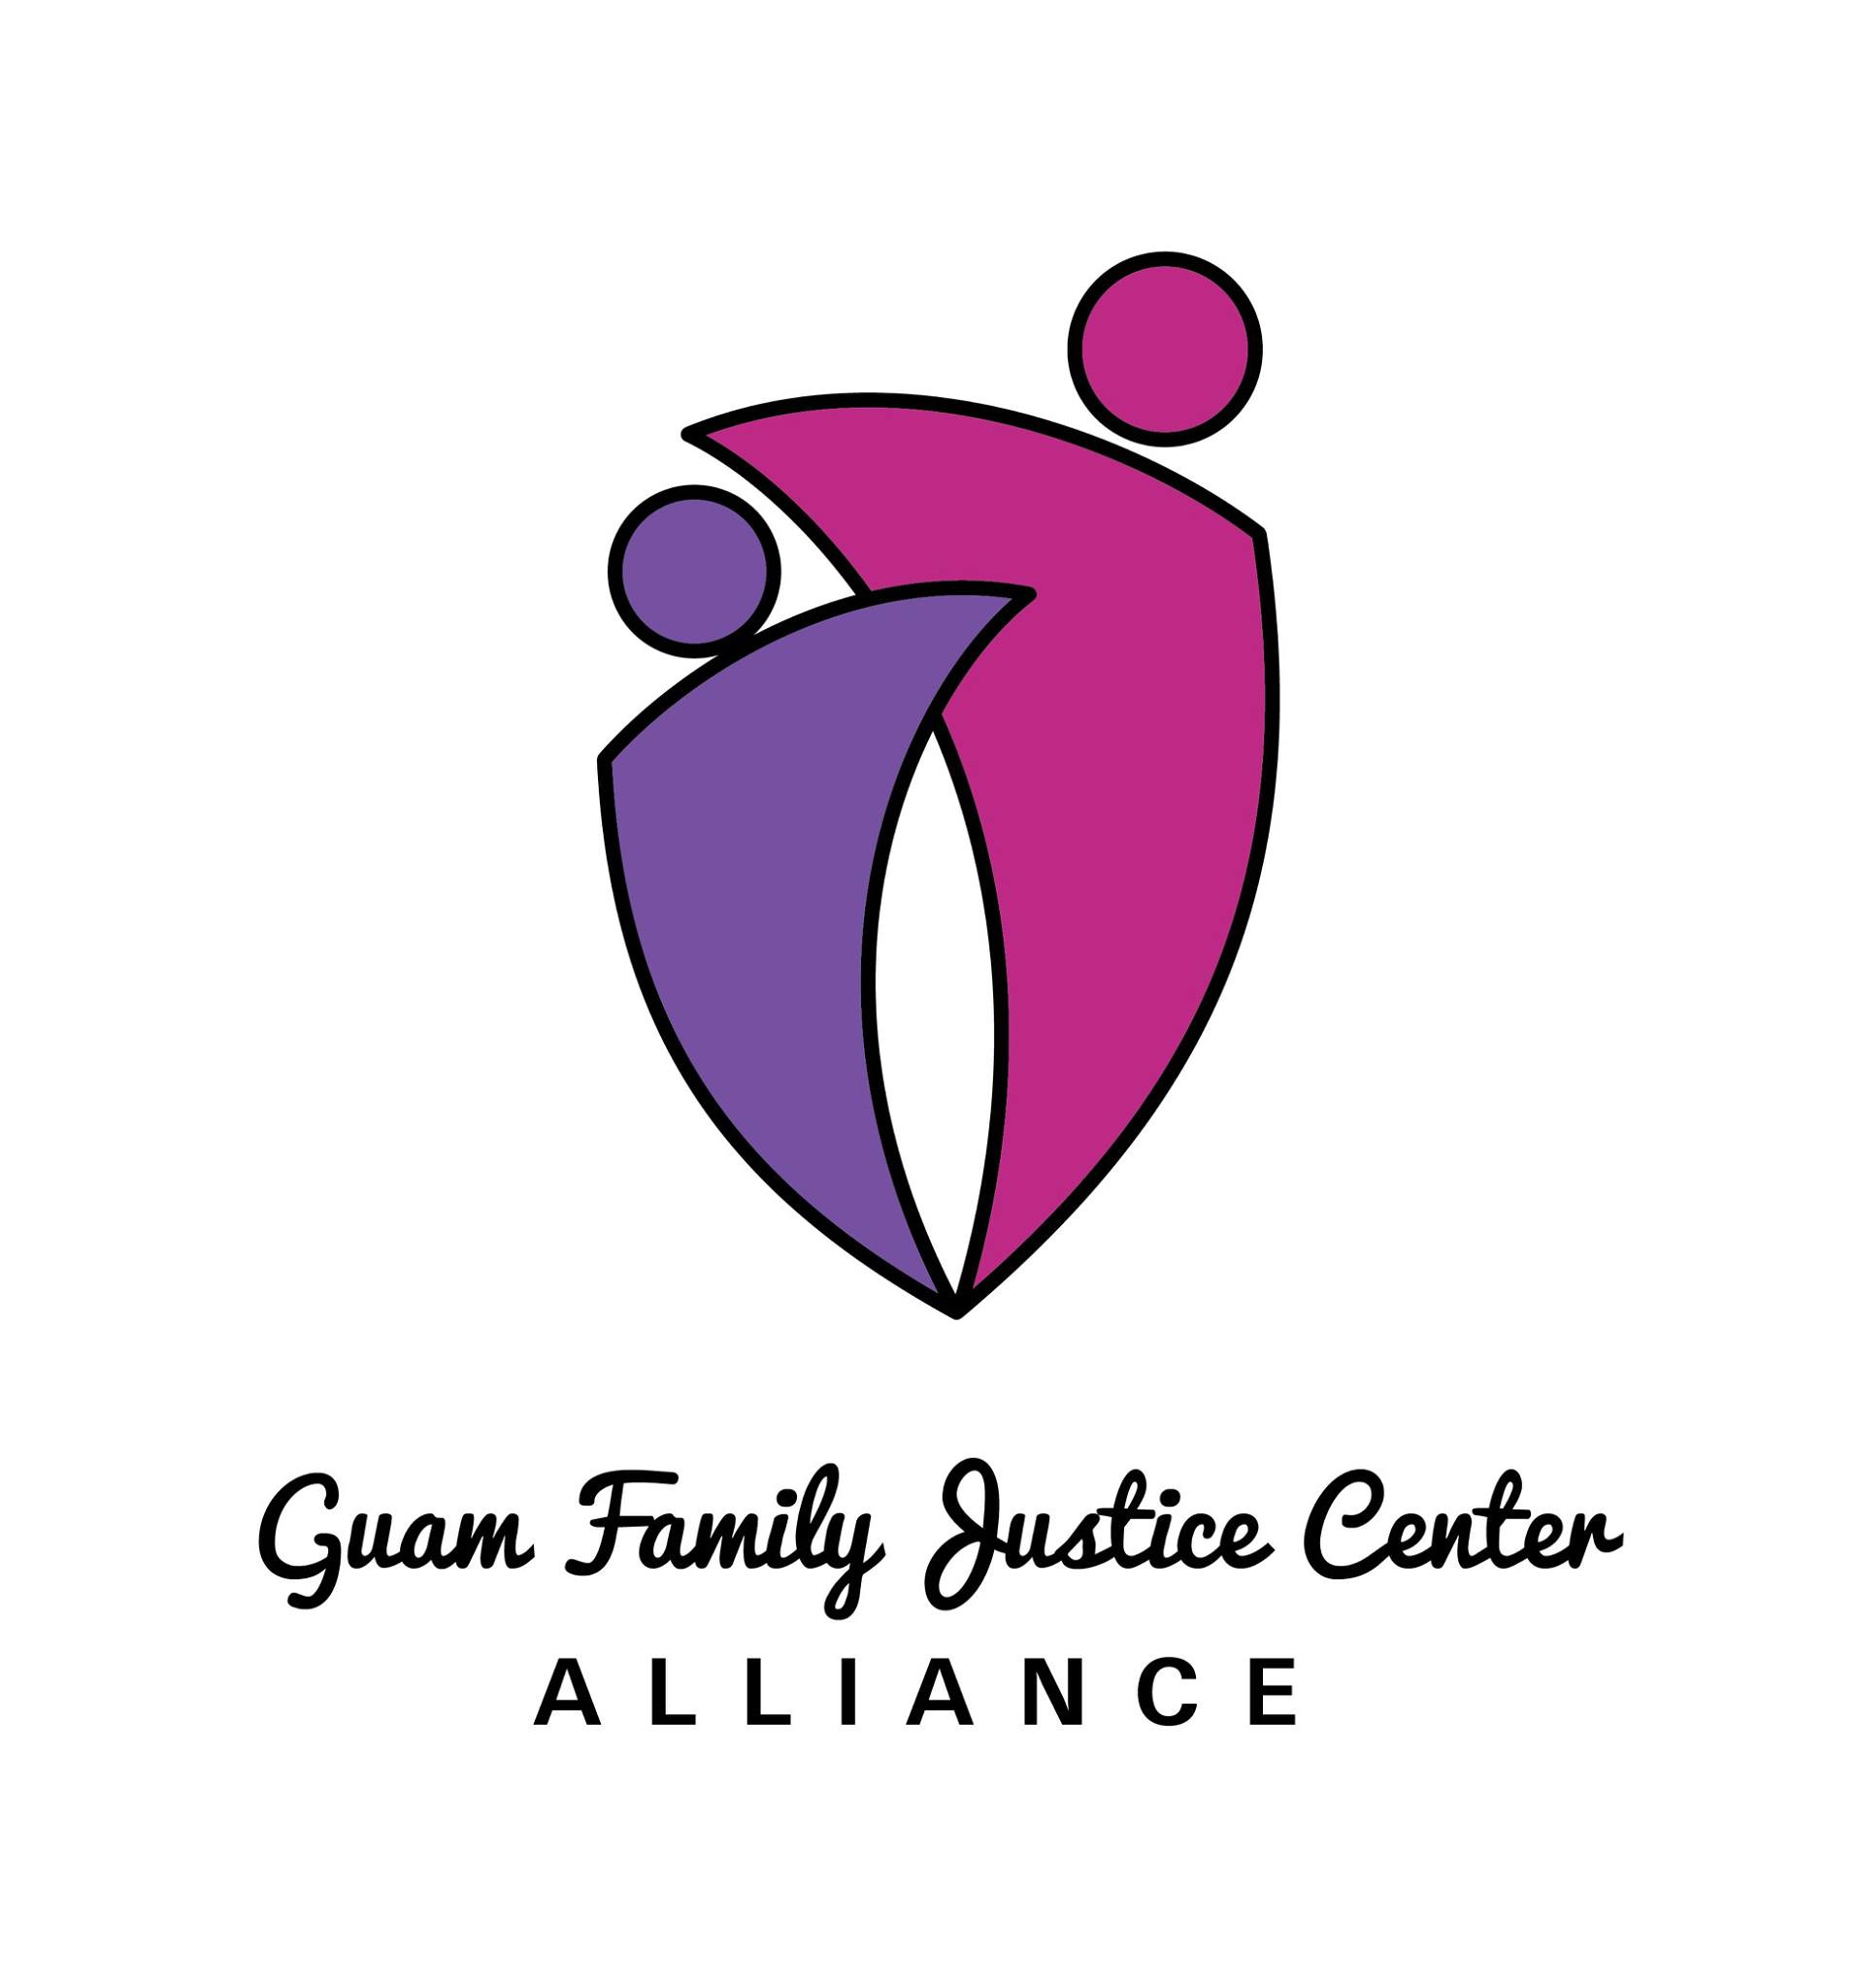 The Guam Family Justice Center Alliance.jpg